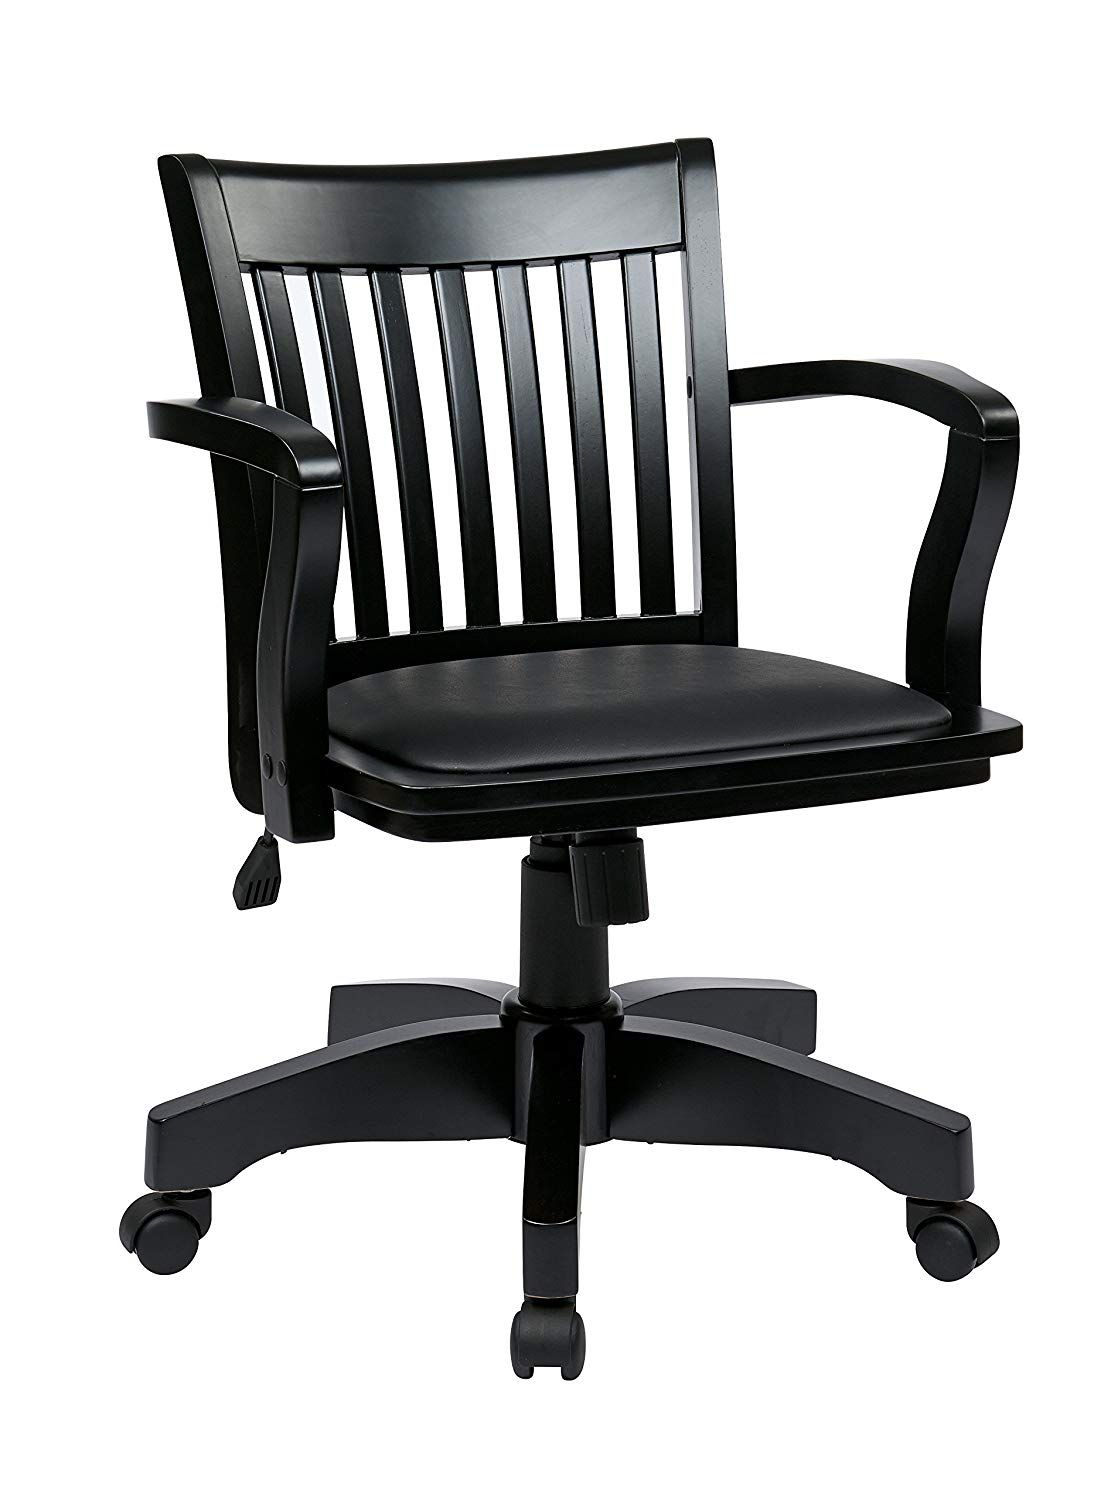 Wood bankers desk chair with vinyl seat